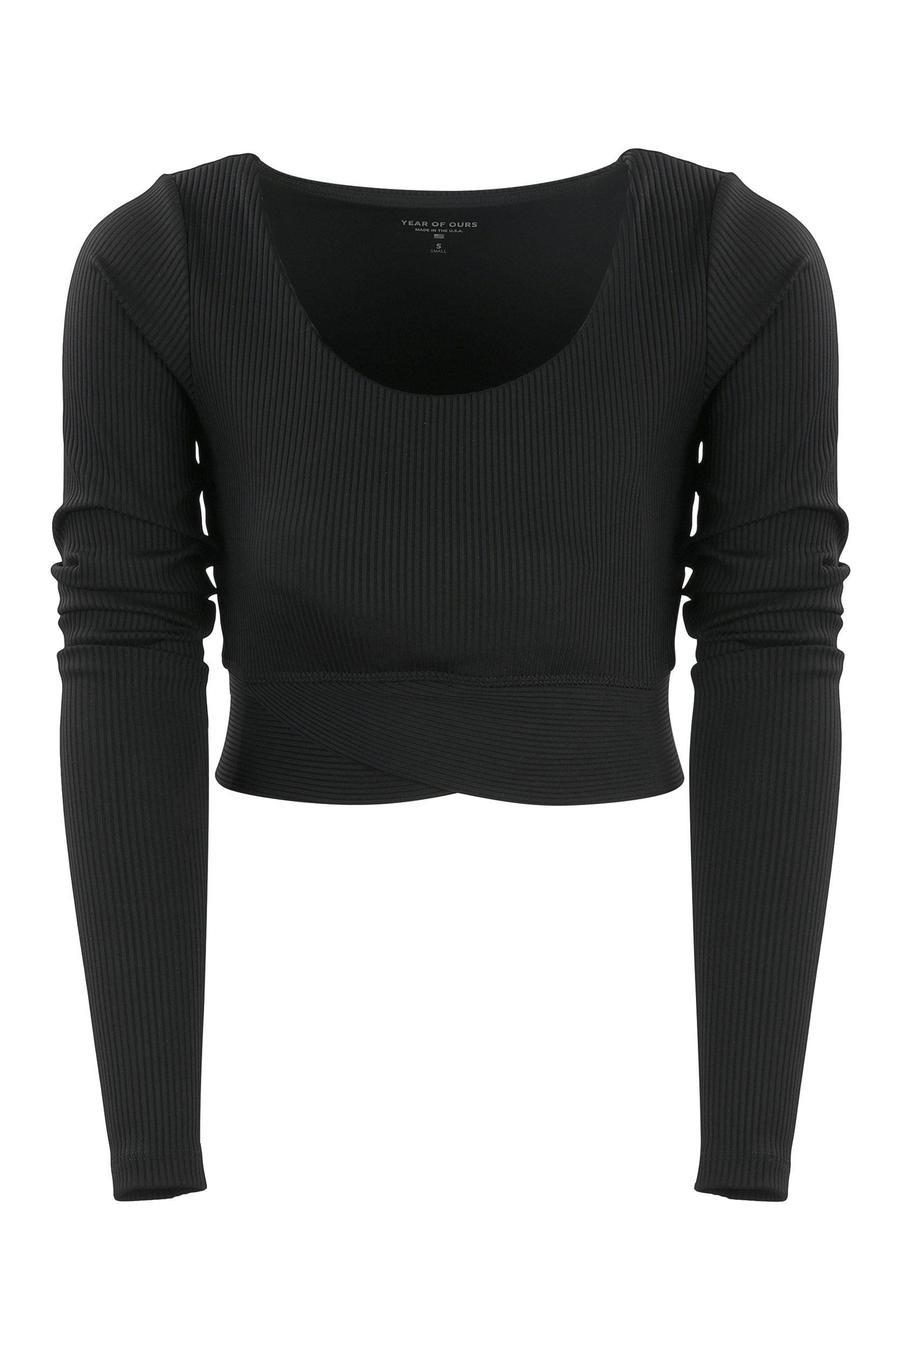 RIBBED CROP LONG SLEEVE | YEAR OF OURS